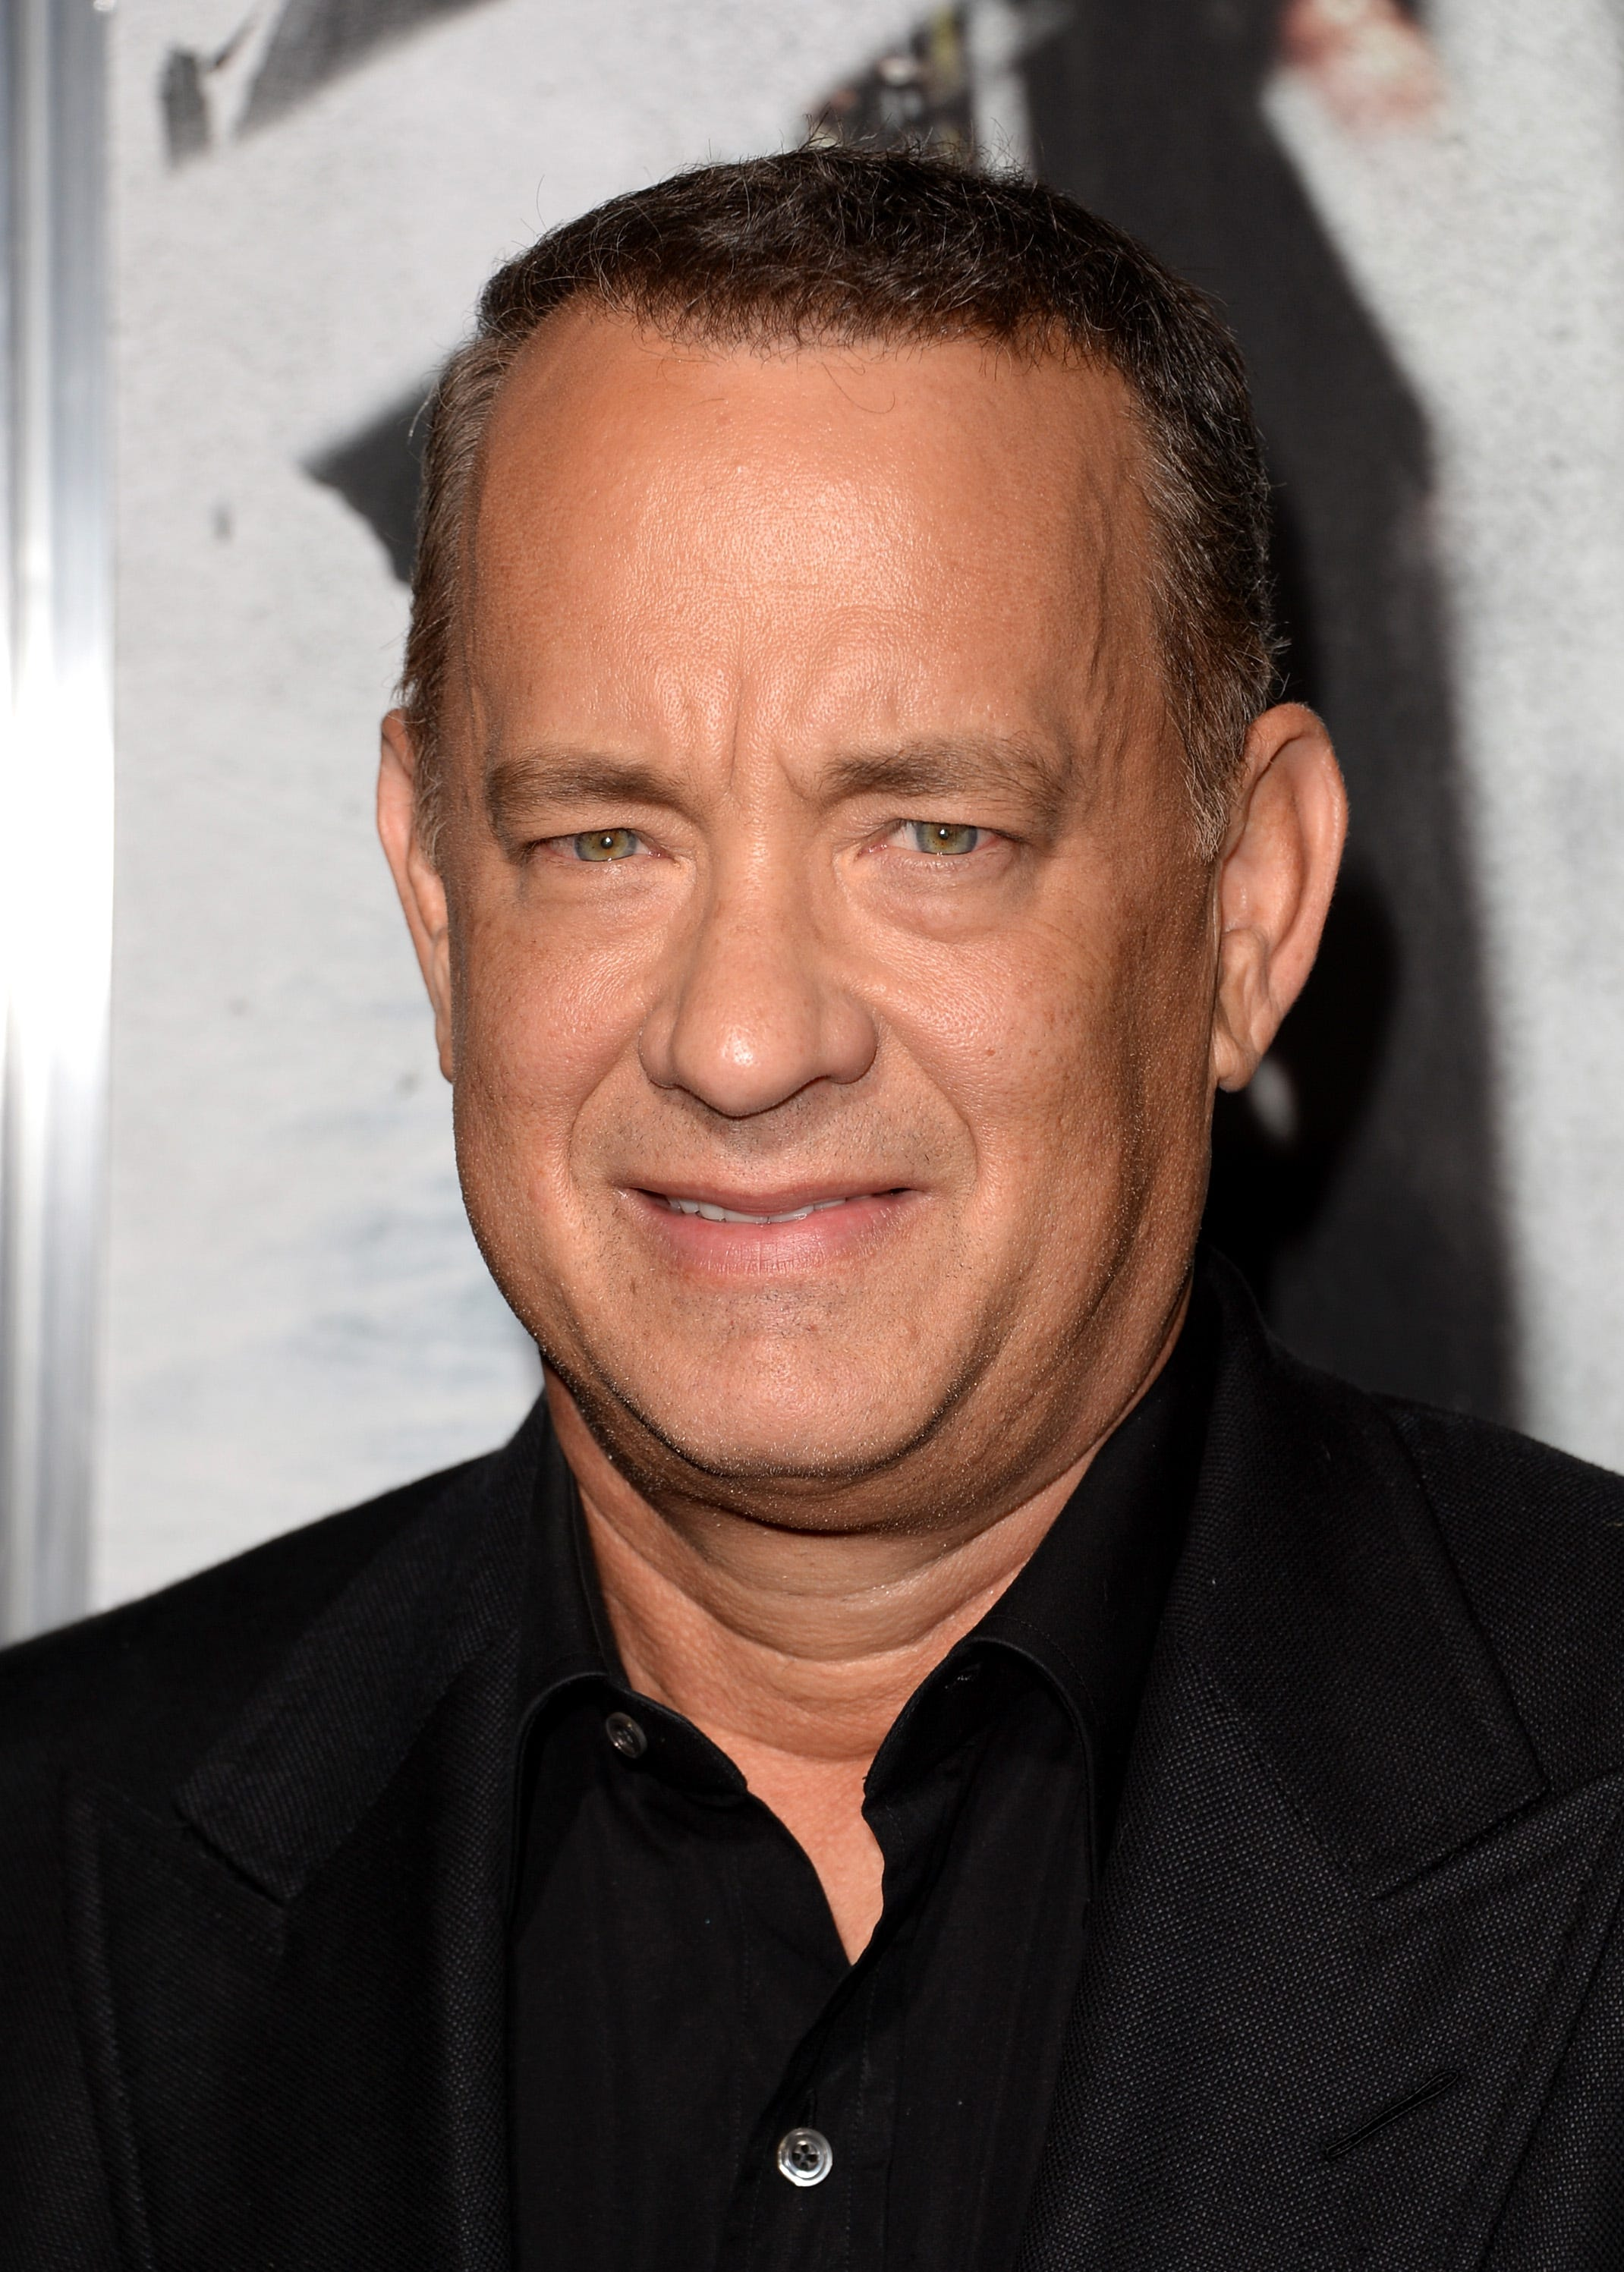 tom hanks movies 2016